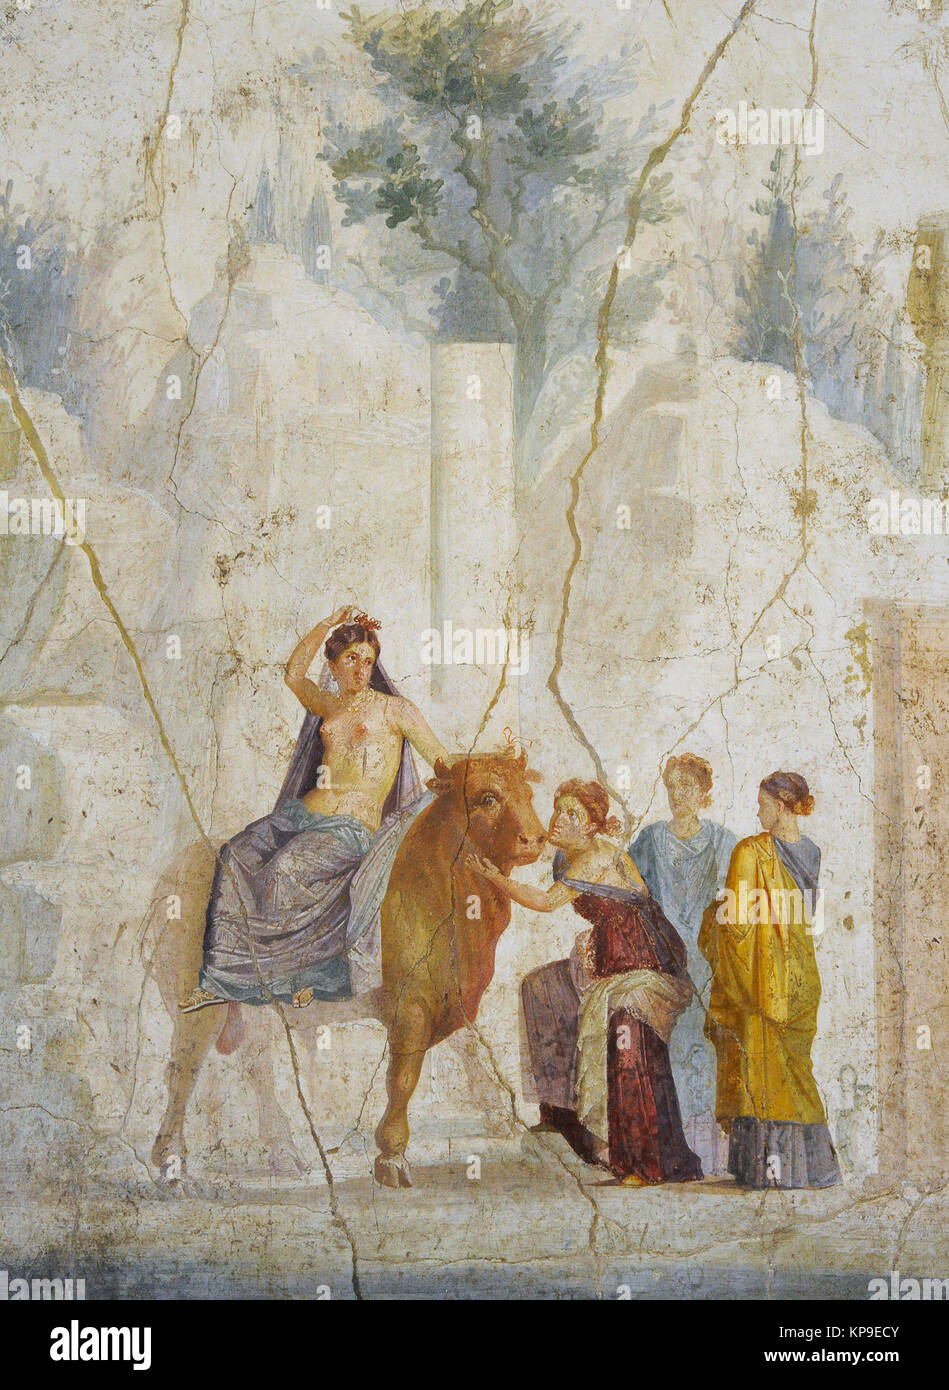 Fresco depicting The Abduction of Europe. Attributed to Master Chiaro. 1st century AD. Fourth Pompeian Style (45 - Stock Image